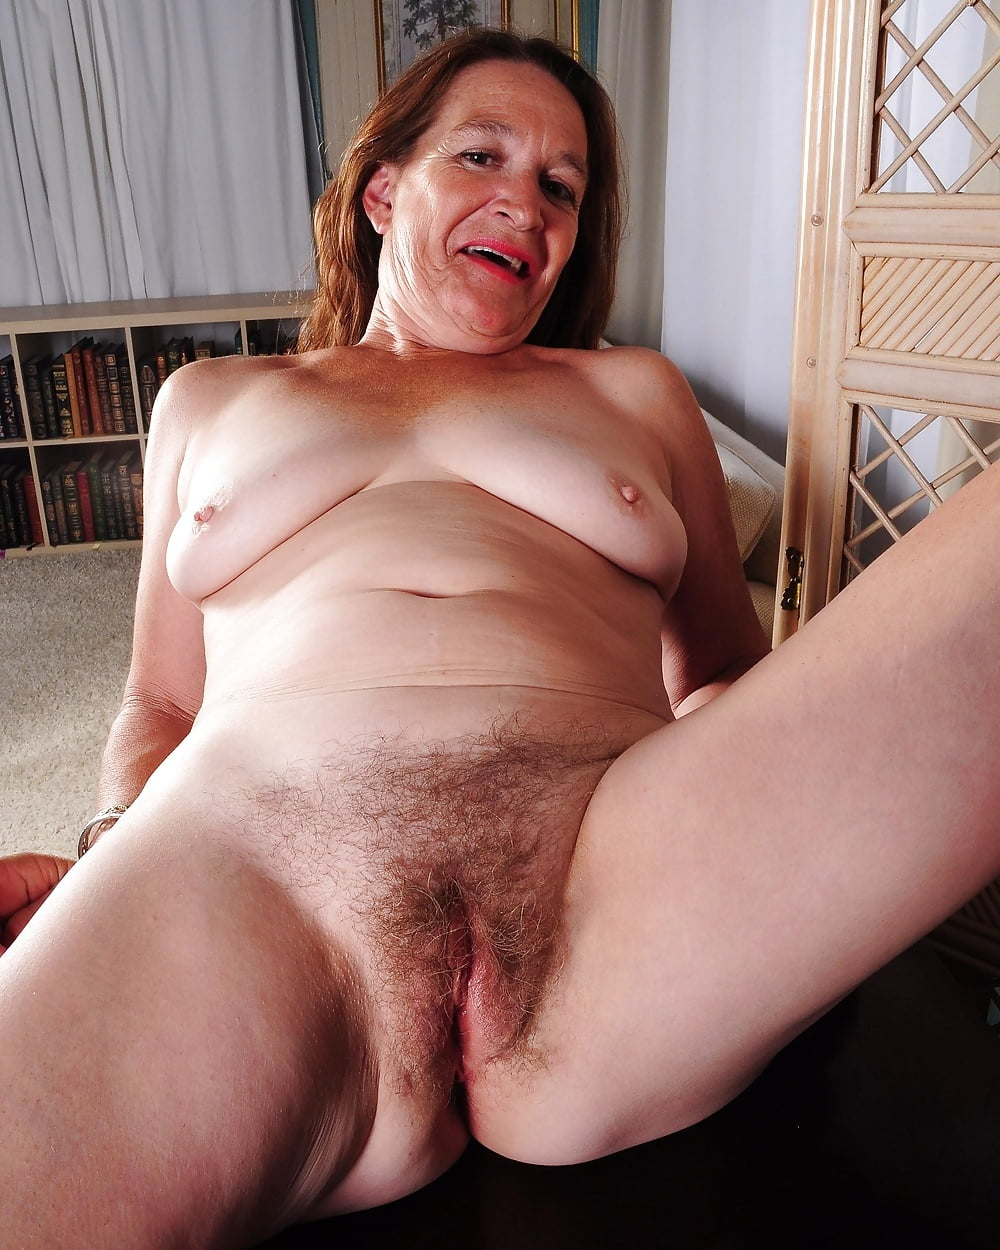 Porn old hairy nude models jenner